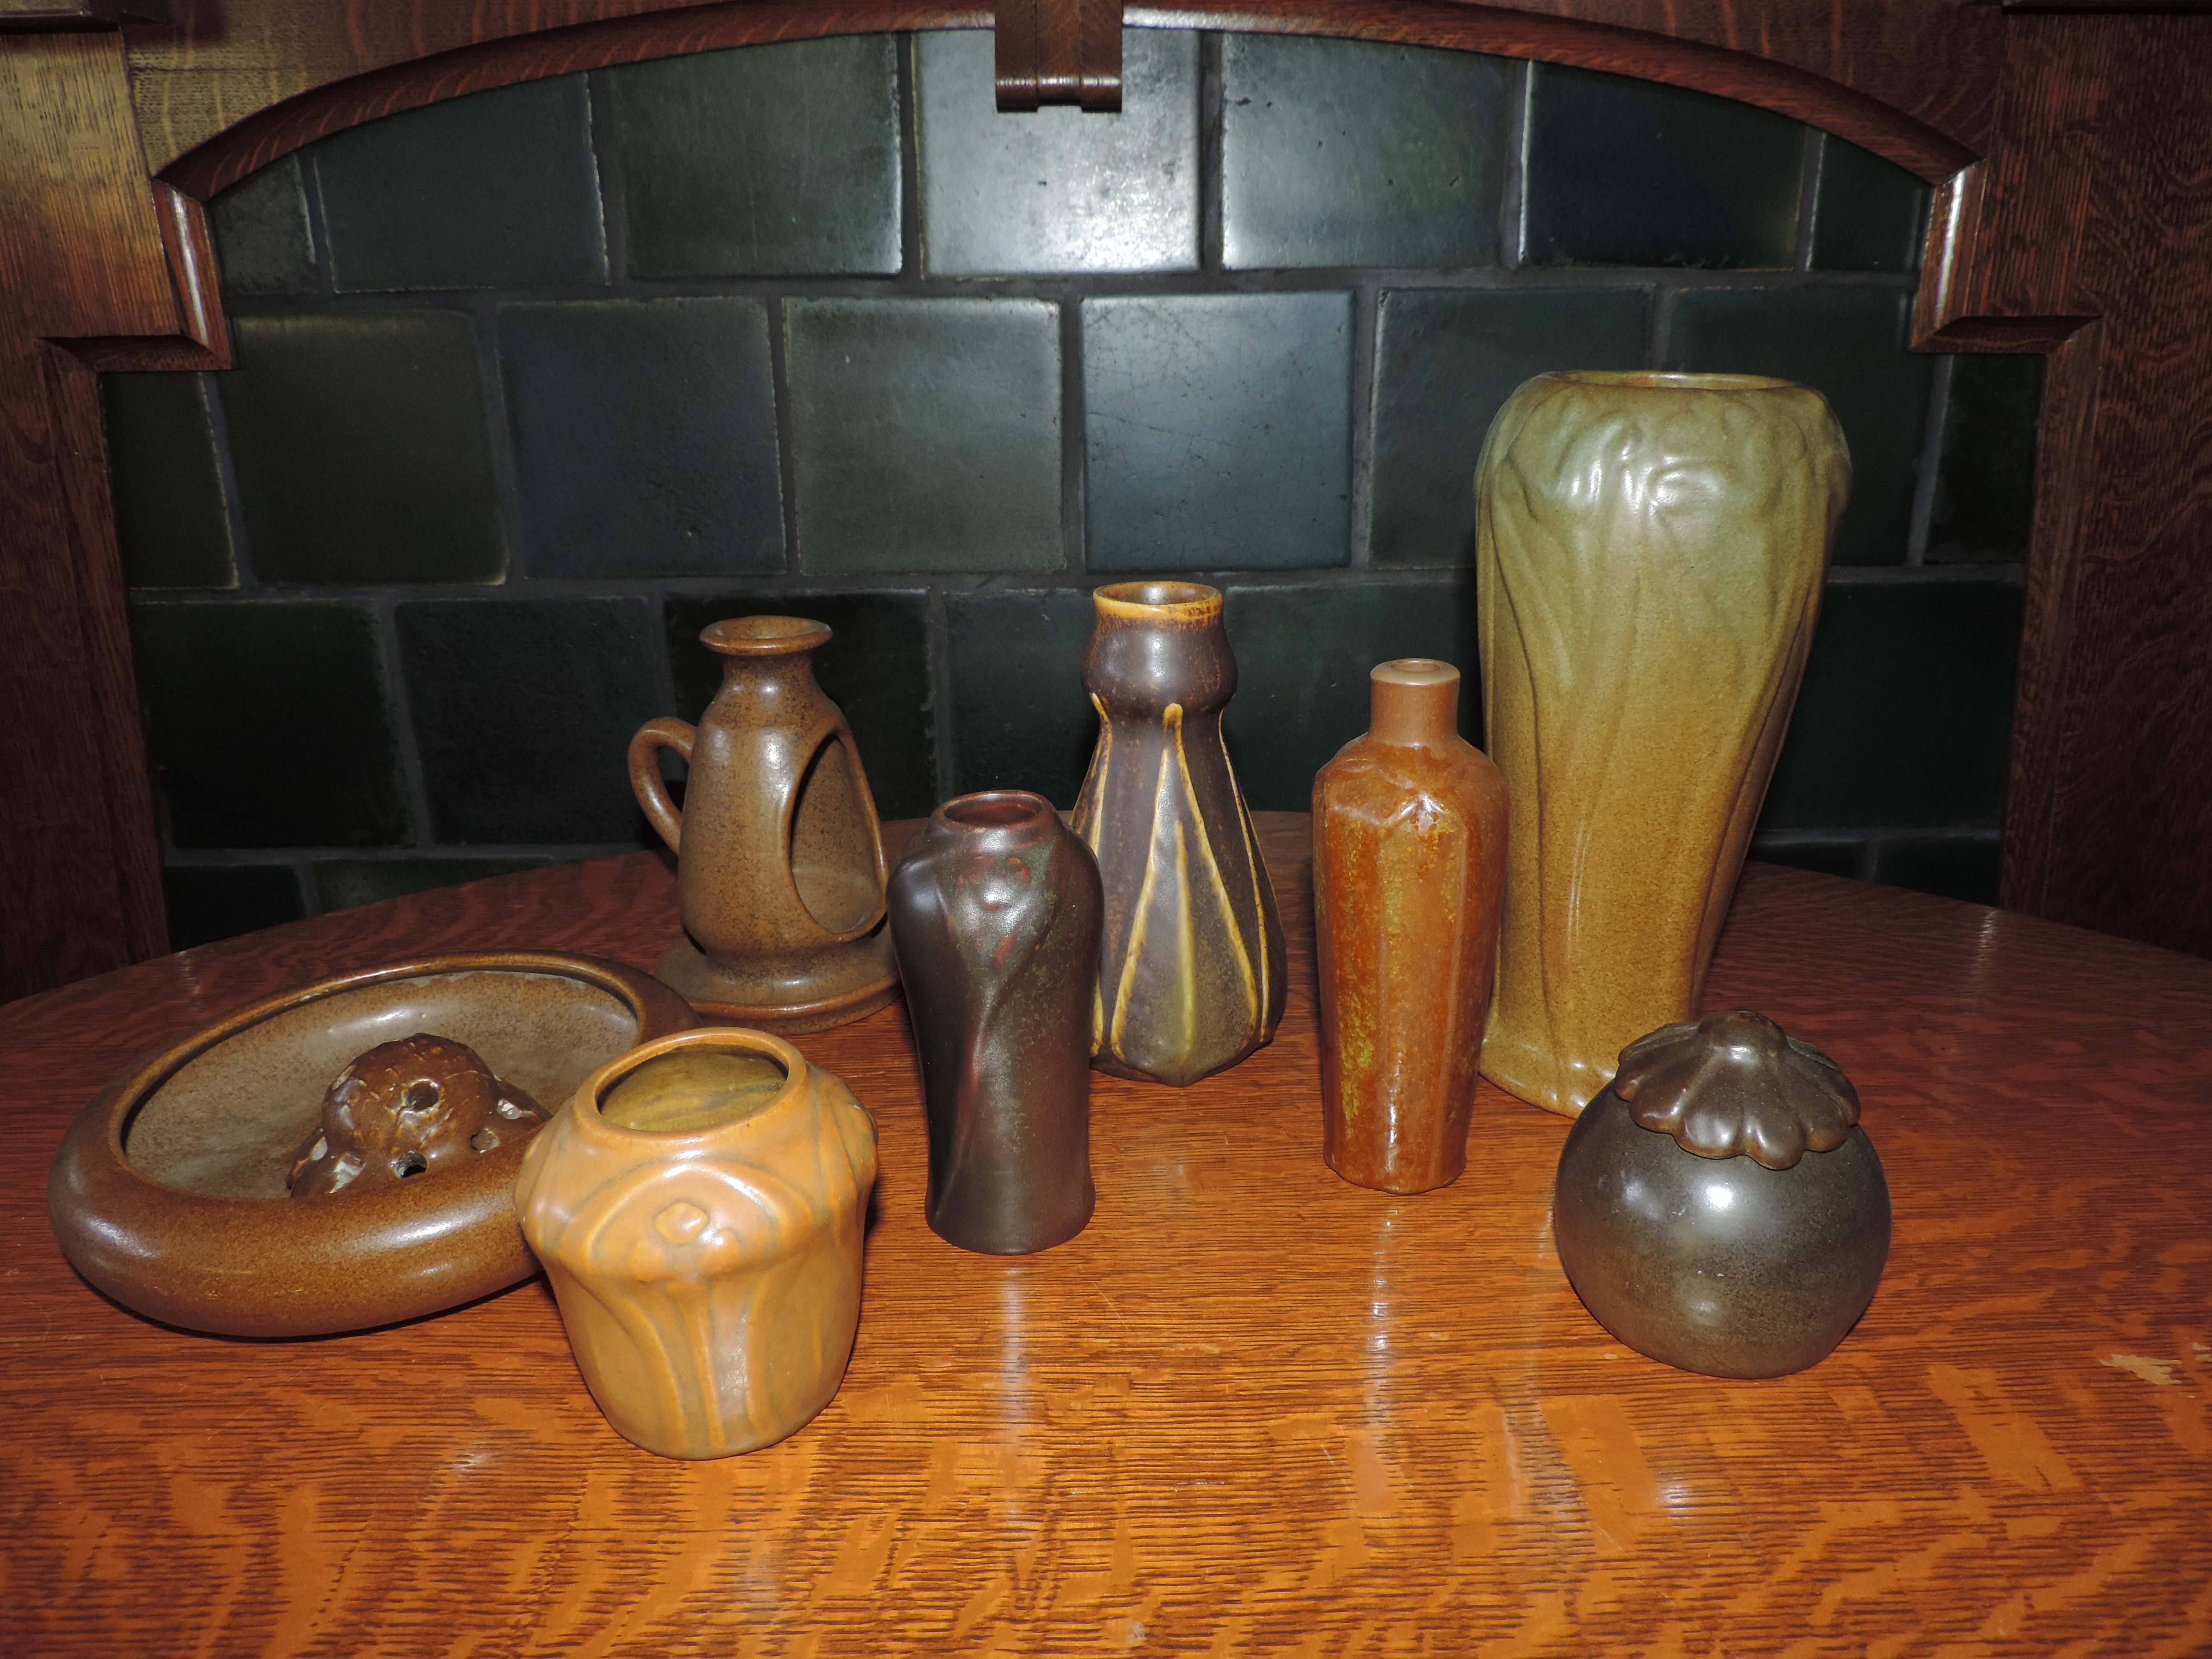 Glazes van briggle notes there were many shades of brown used in the early pottery designs the bowl on far left has been affectionately called the color of tobacco spit reviewsmspy